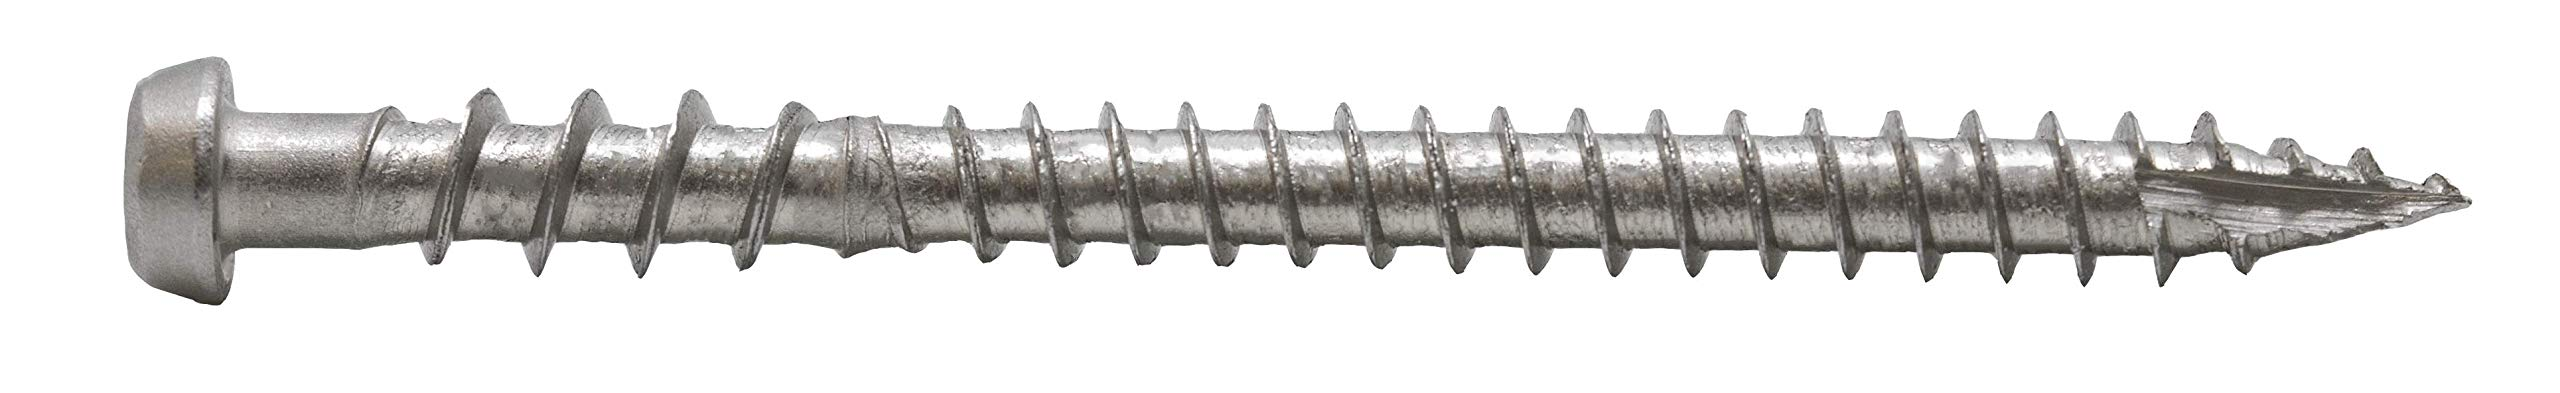 CAMO Collated Composite Face Screws 2-1/2 in (63mm) 304 STAINLESS STEEL